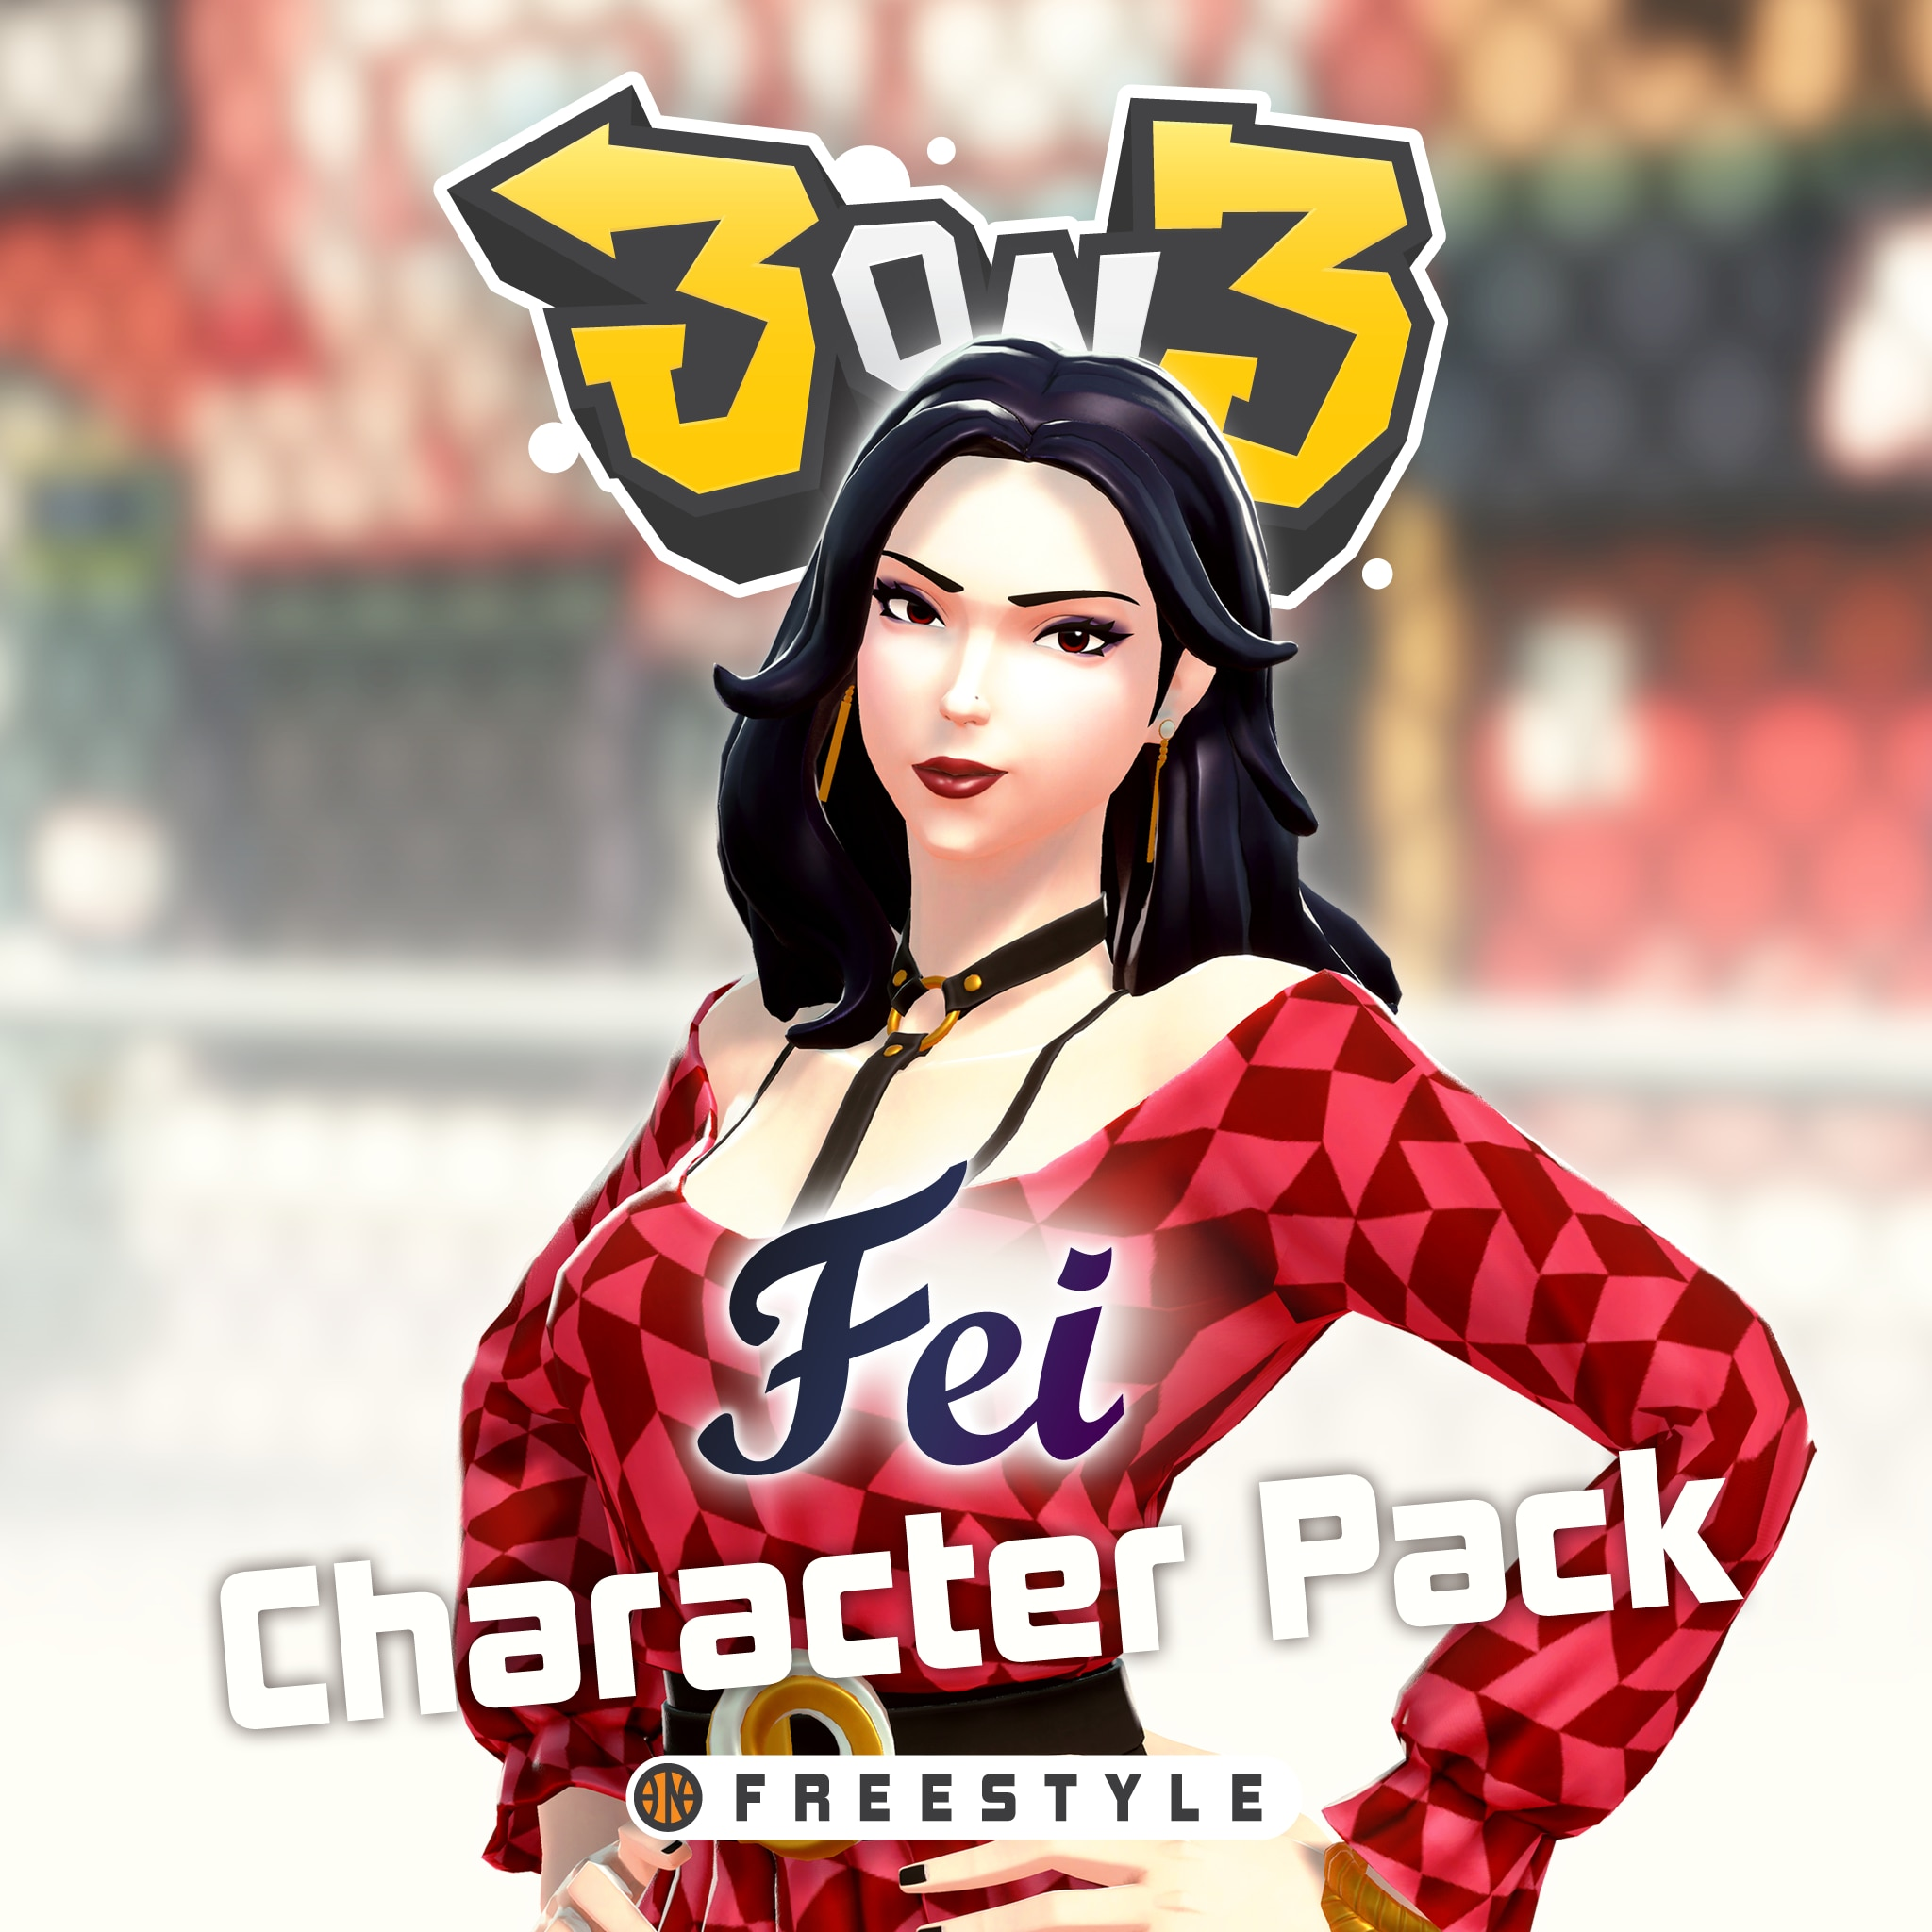 3on3 FreeStyle – Fei Character Pack